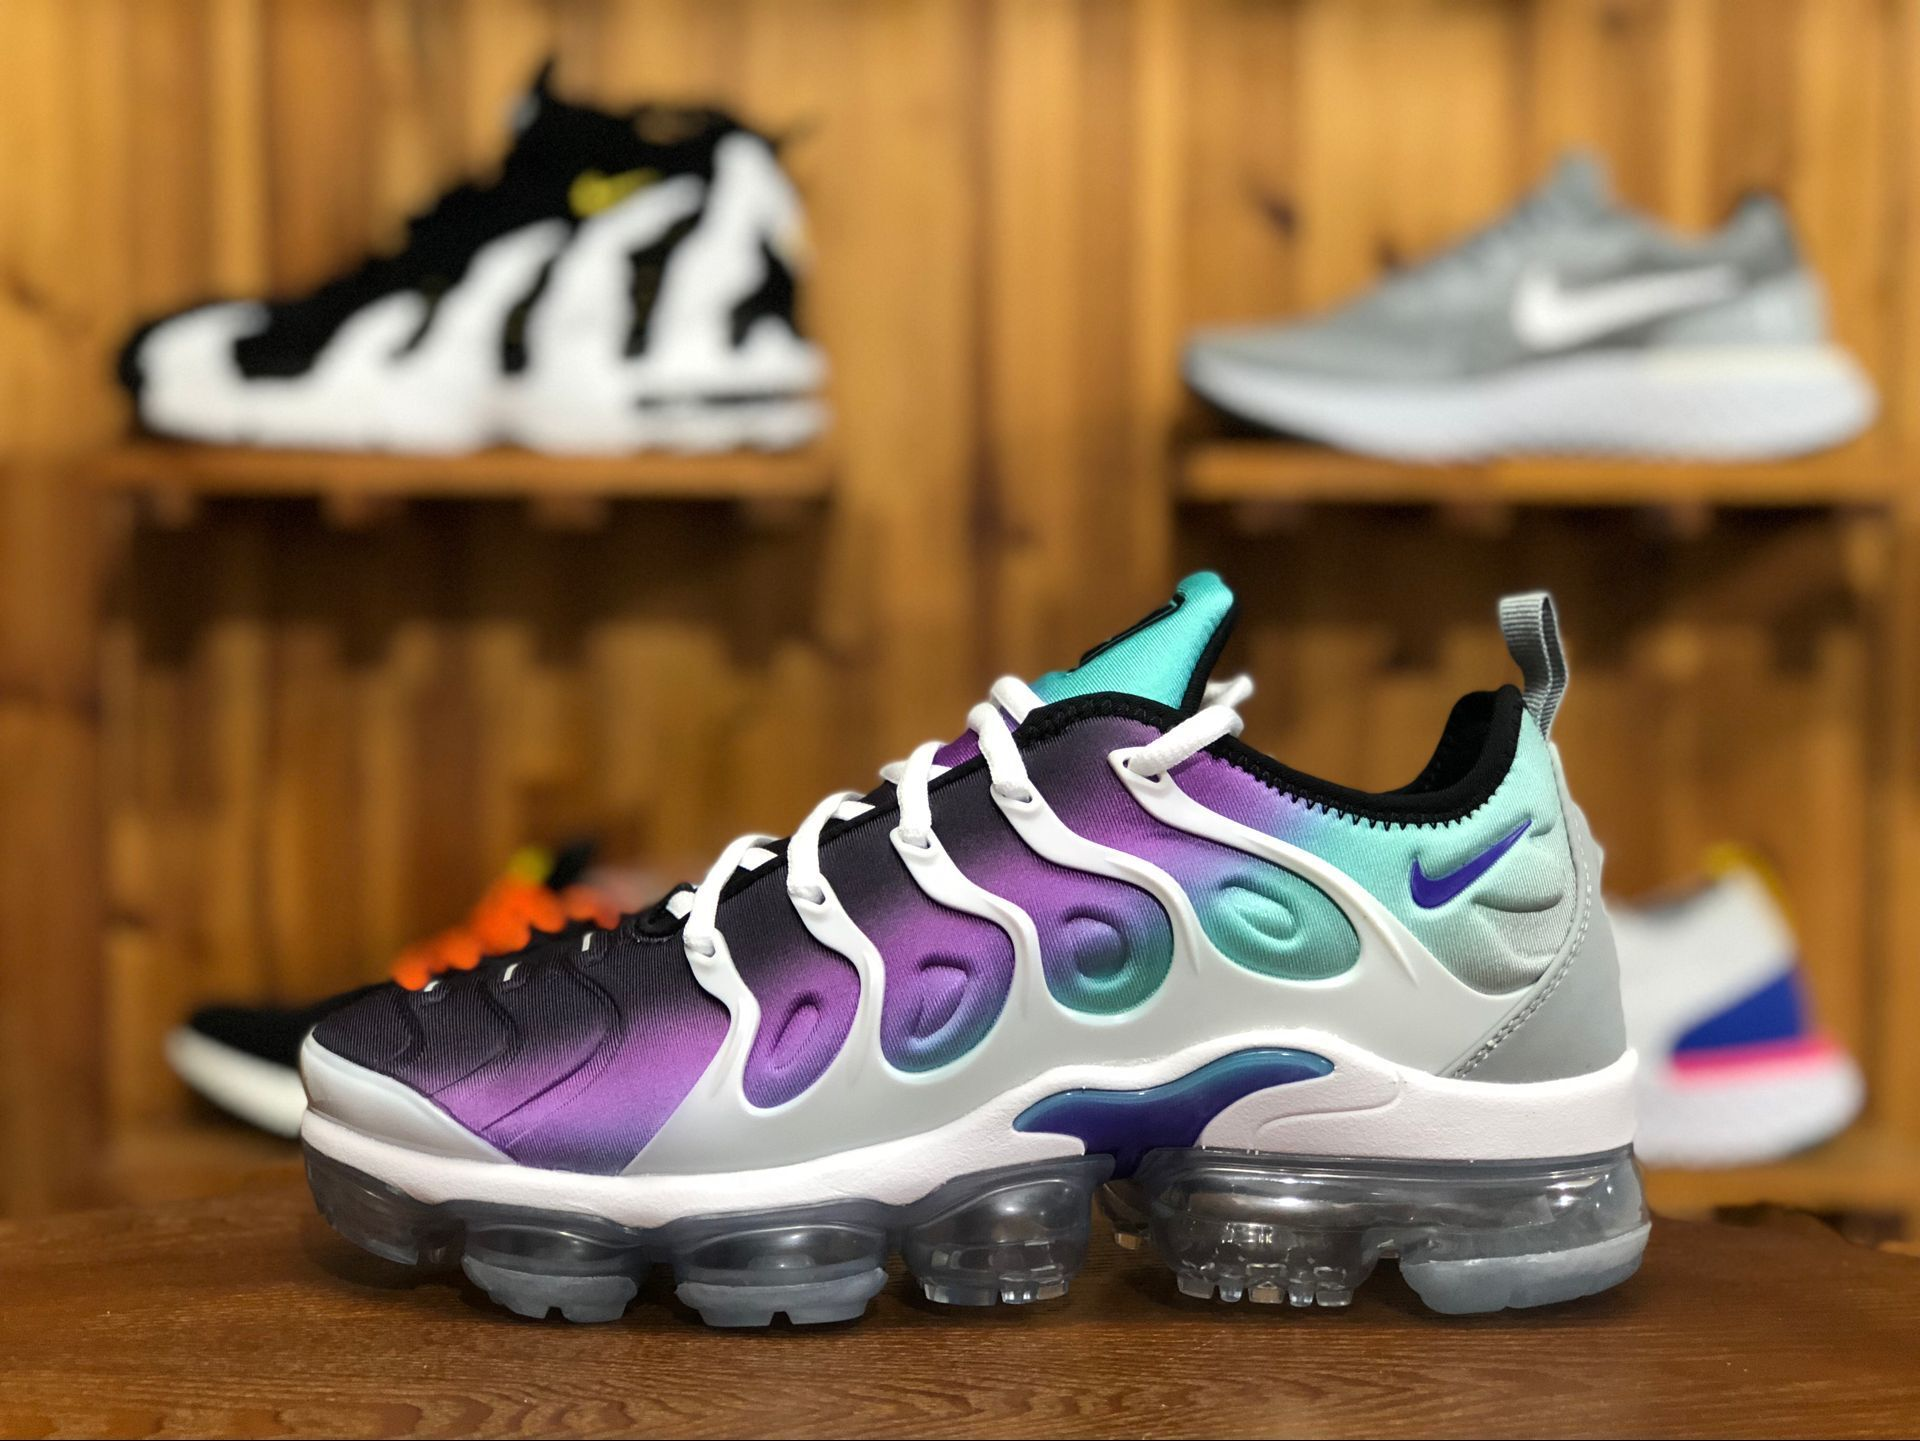 huge sale 8d8e8 43b2b Nike Air VaporMax Plus Grape Color  White Fierce Purple-Aurora Green-Black